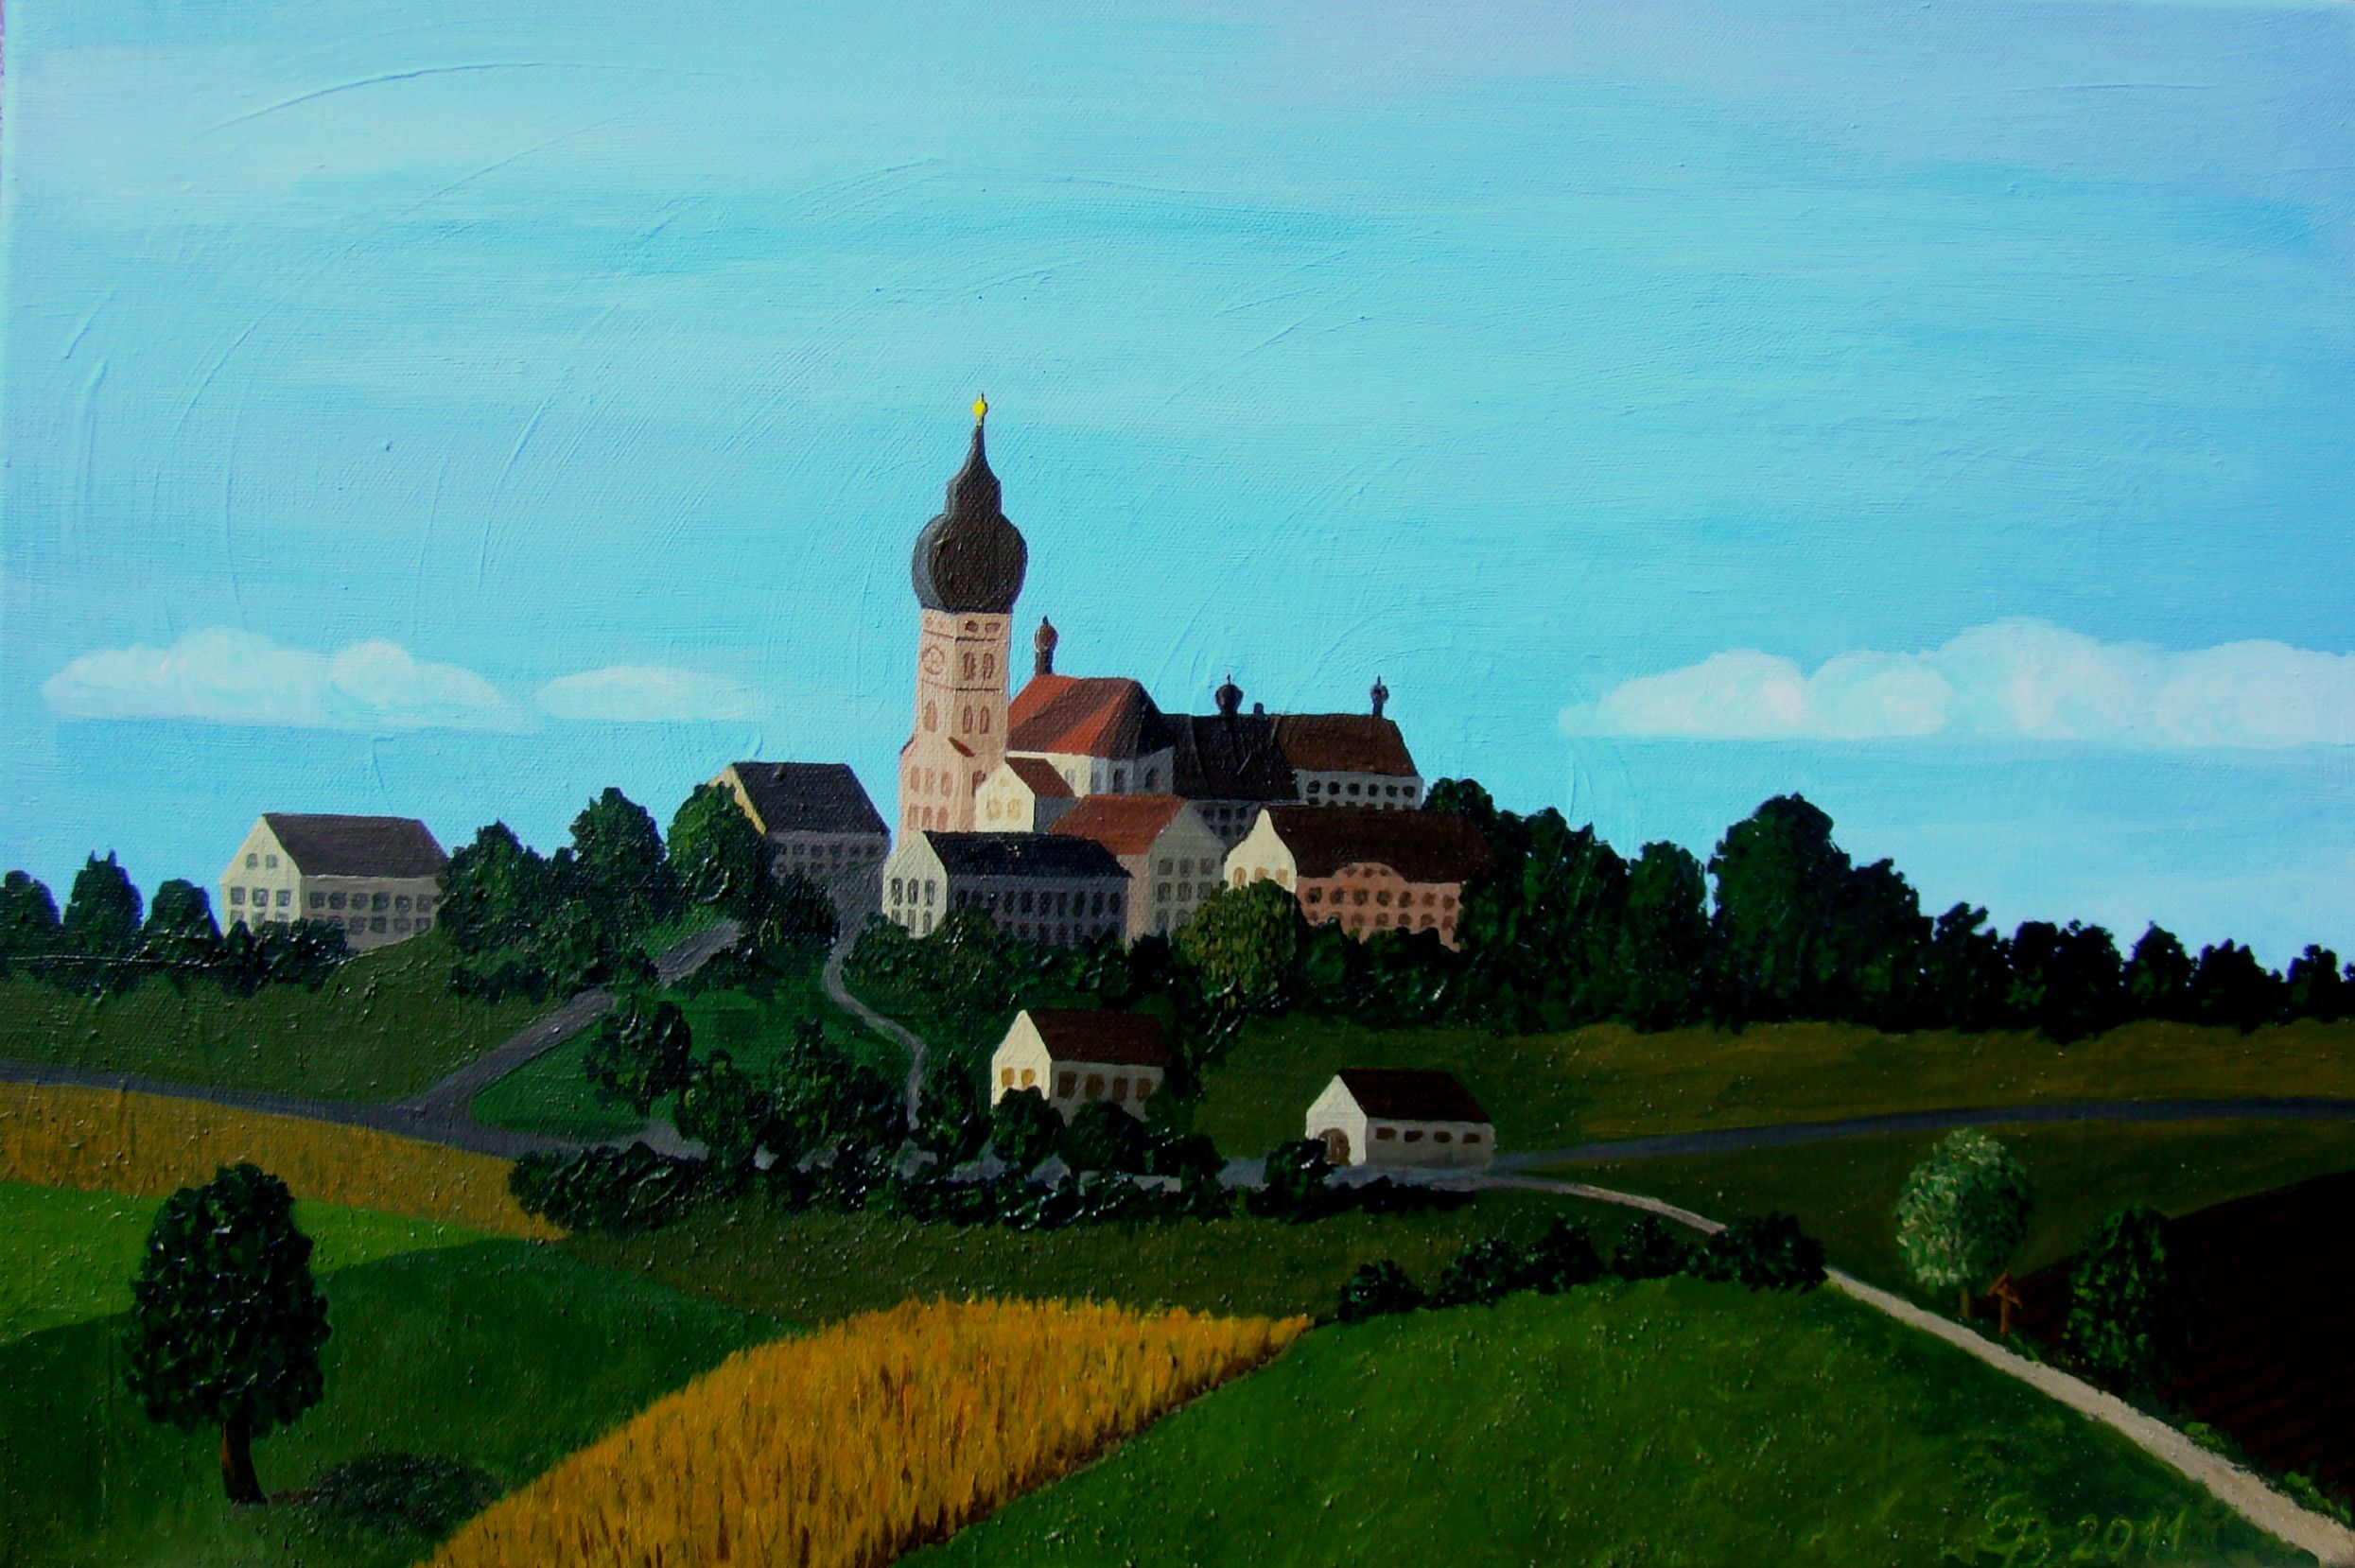 """Kloster Andechs"" 2011, Acryl, 40 x 60 naive Malerei"